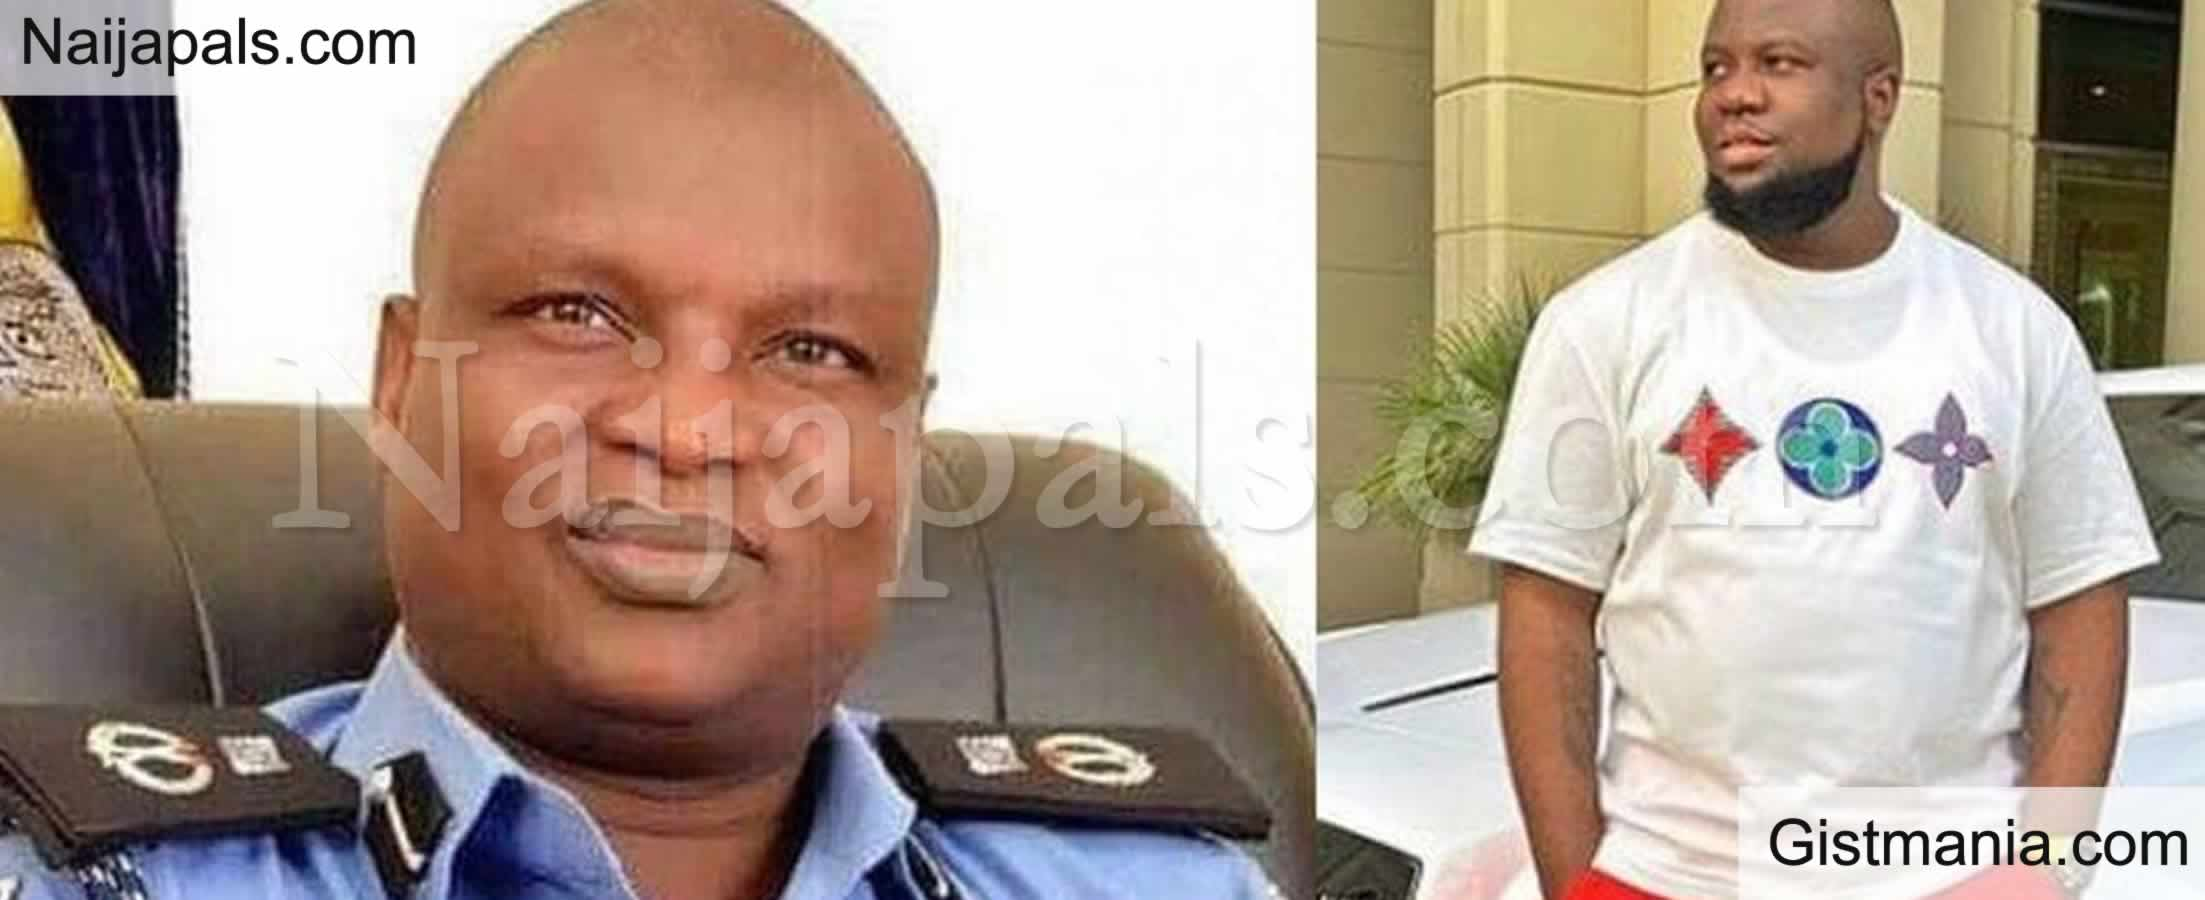 <img alt='.' class='lazyload' data-src='https://img.gistmania.com/emot/comment.gif' /> REVEALED! <b>Full Extract Of Abba Kyari's Conversation With Hushpuppi That Got Him in Trouble</b>